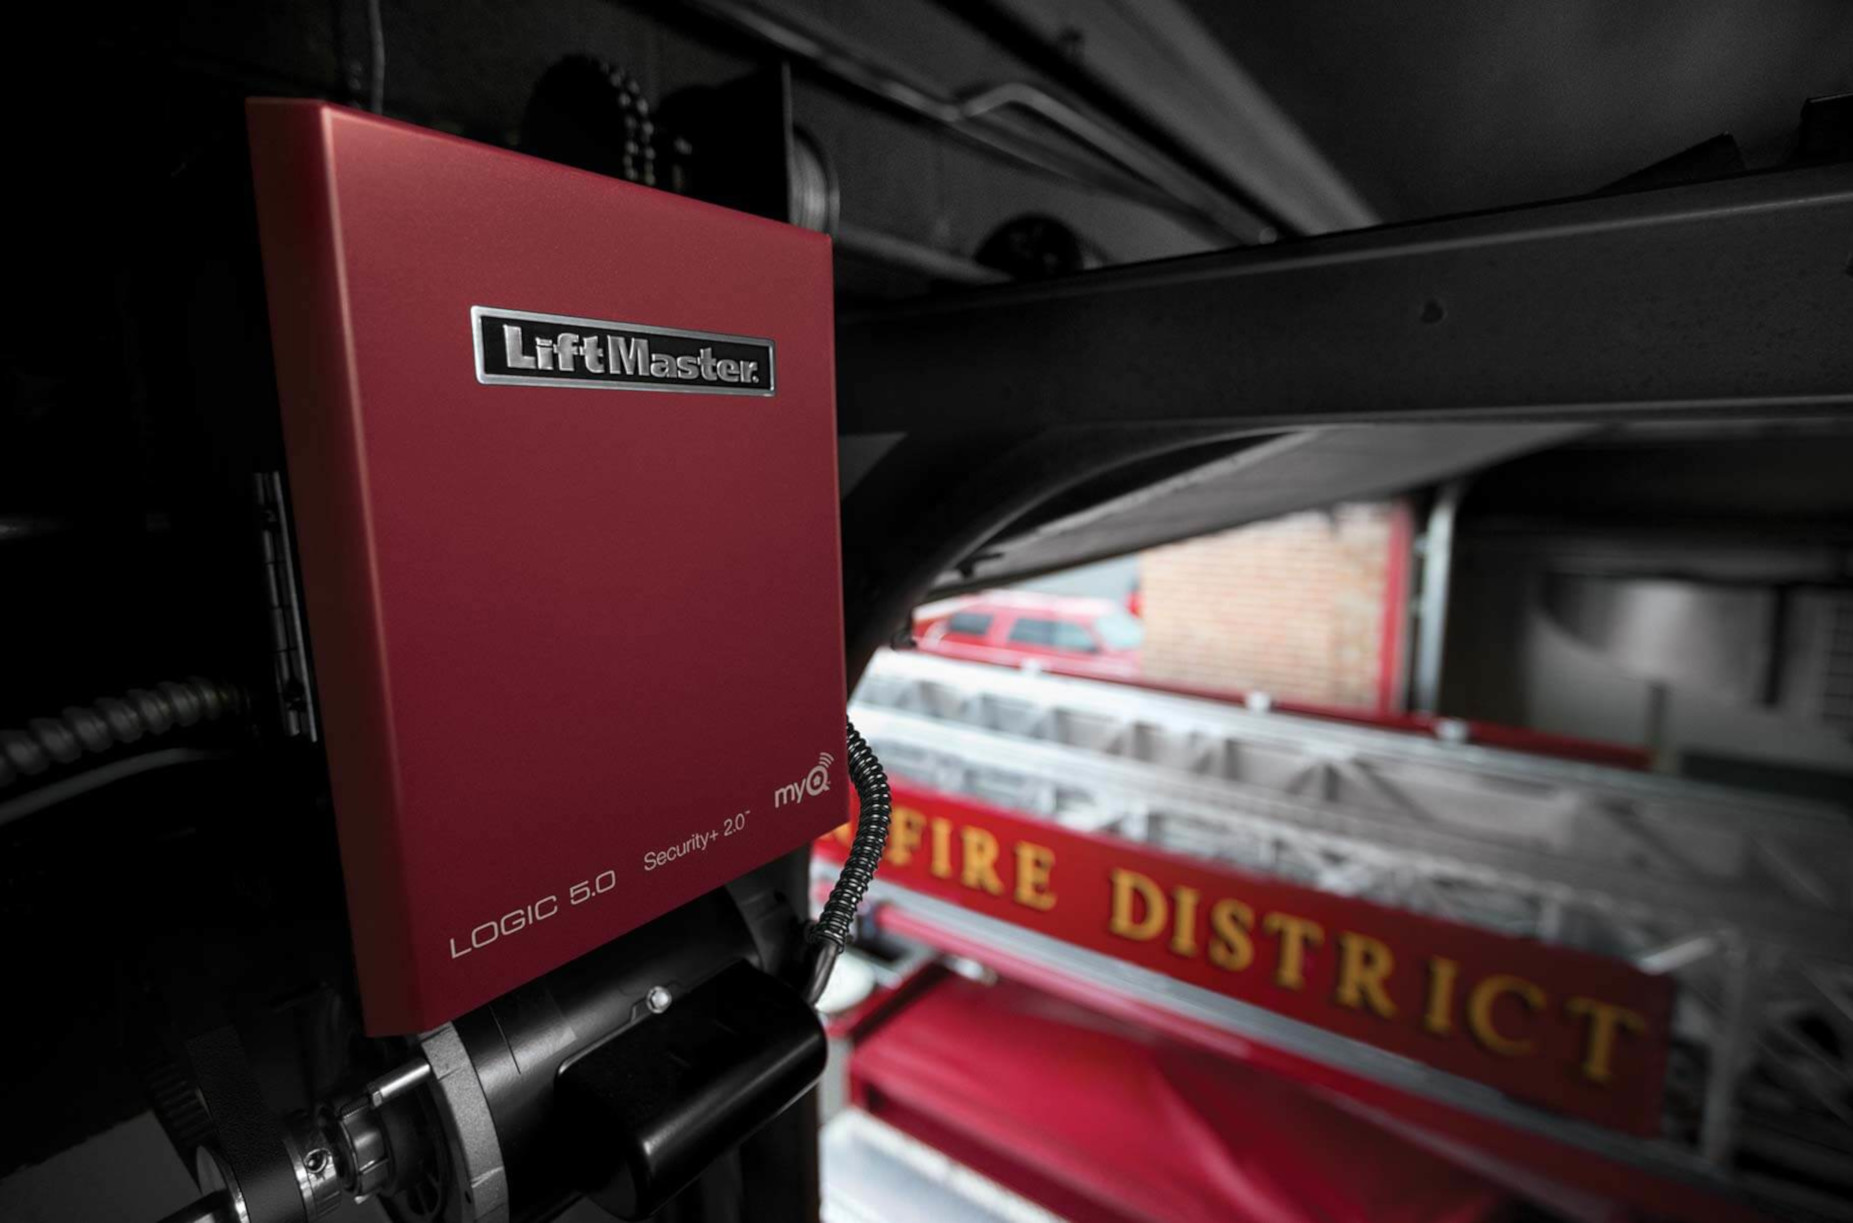 BUSINESS  LiftMaster understands there are times when you need to provide access to your business that are not convenient.